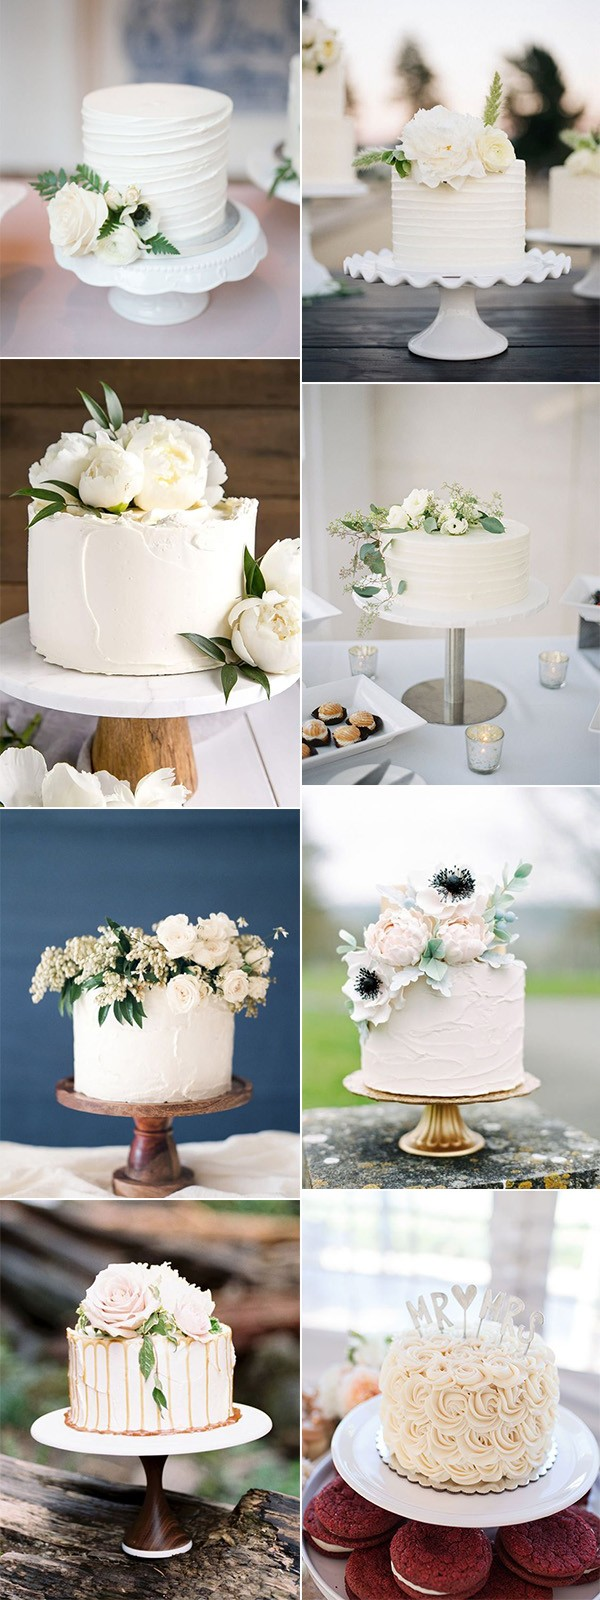 simple but elegant single tier wedding cakes